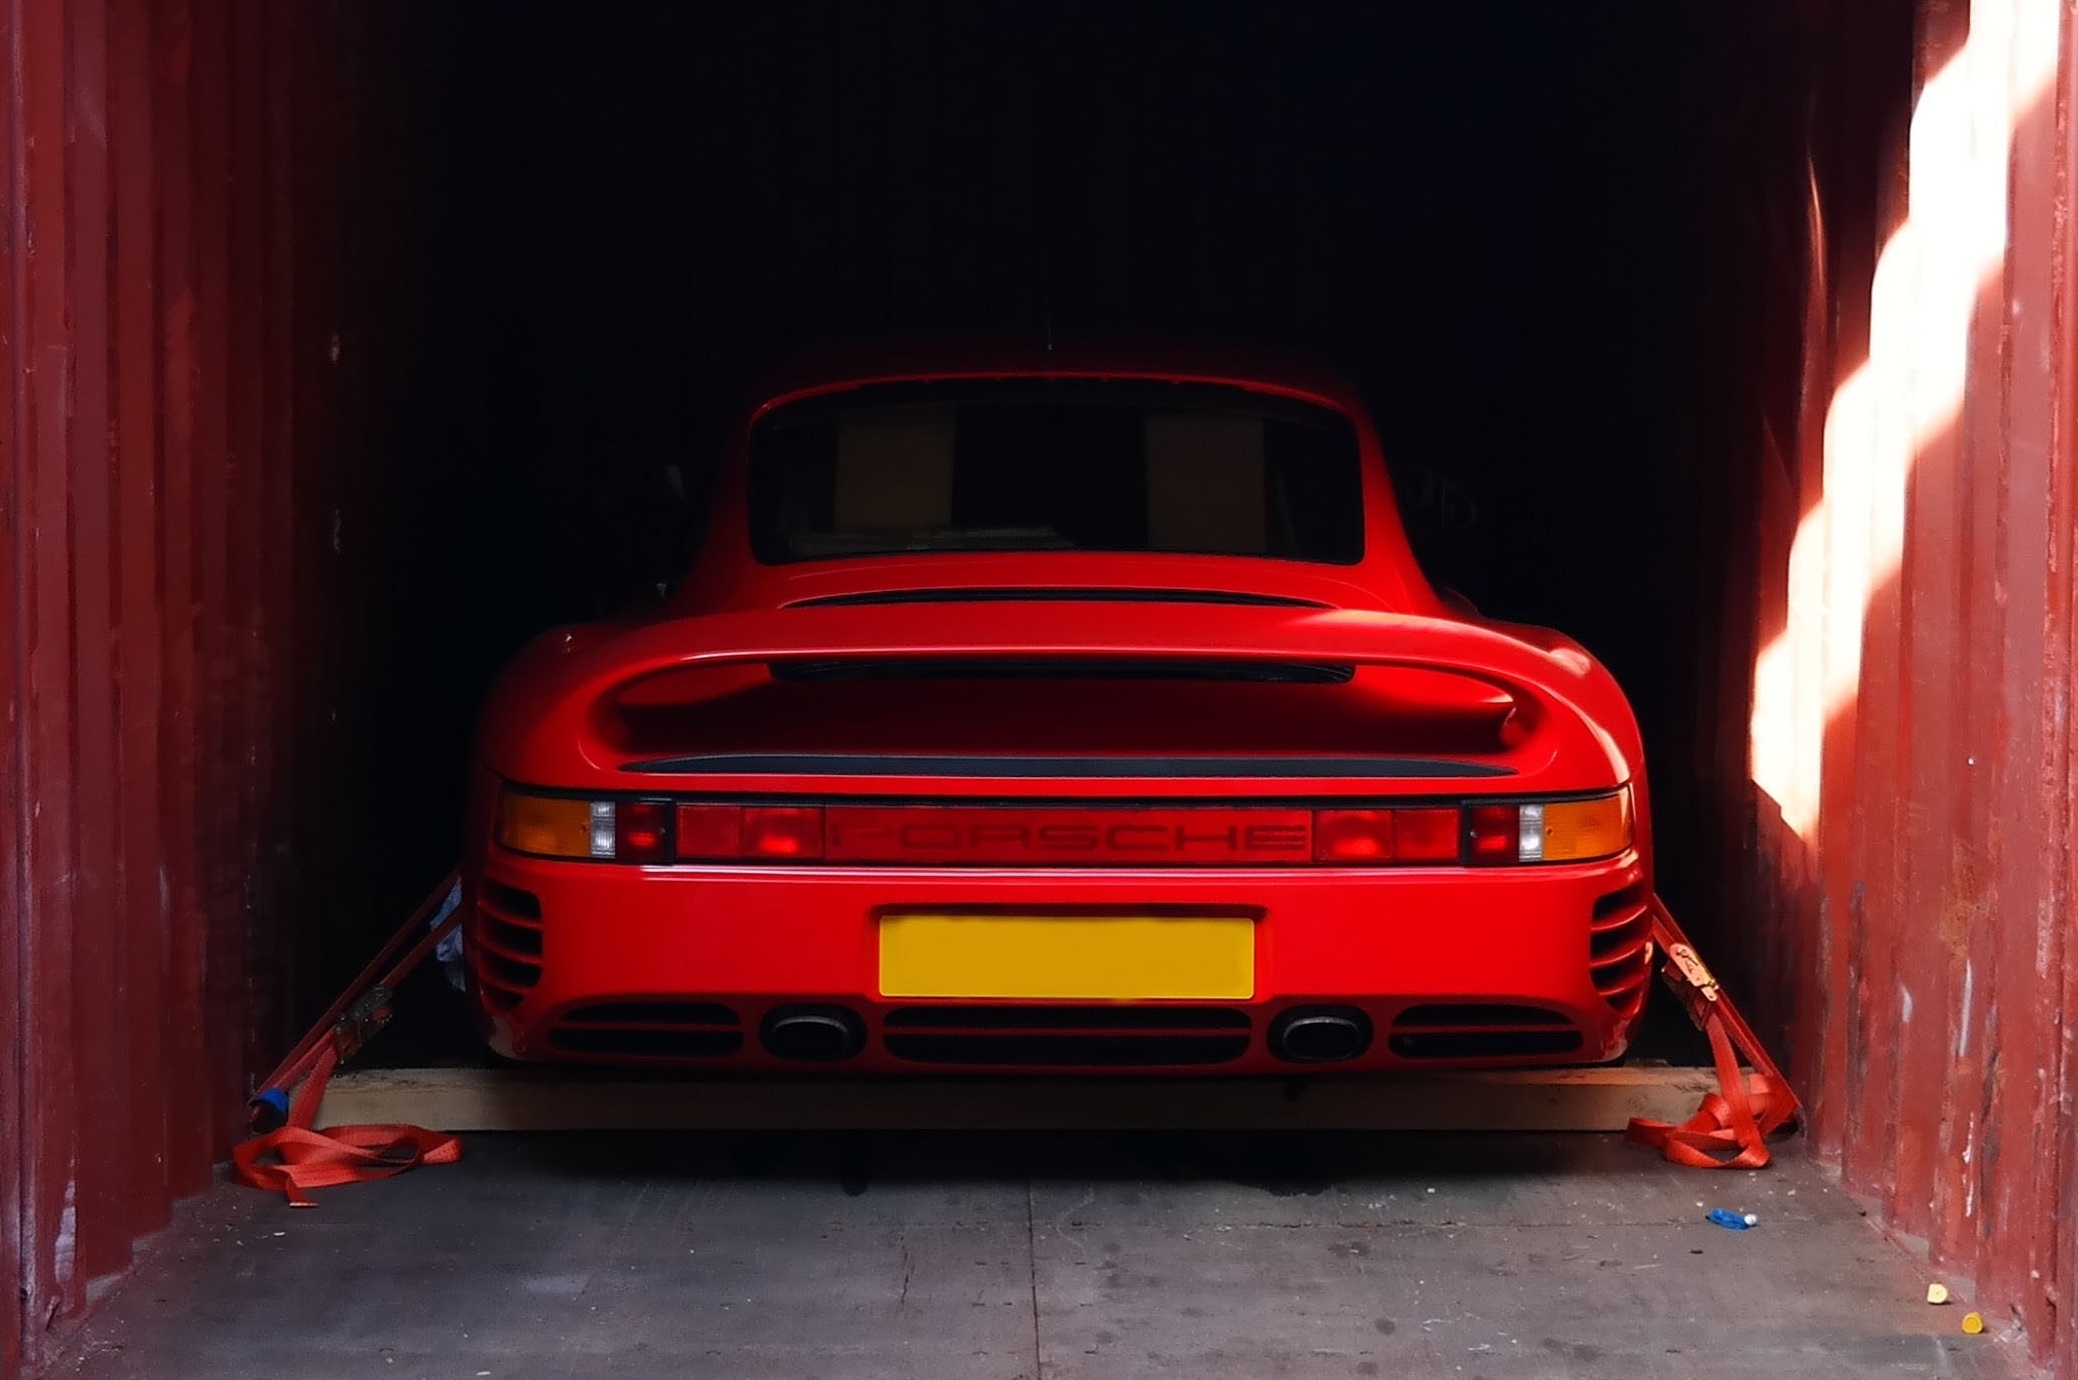 Porsche 959 being shipped overseas in a container